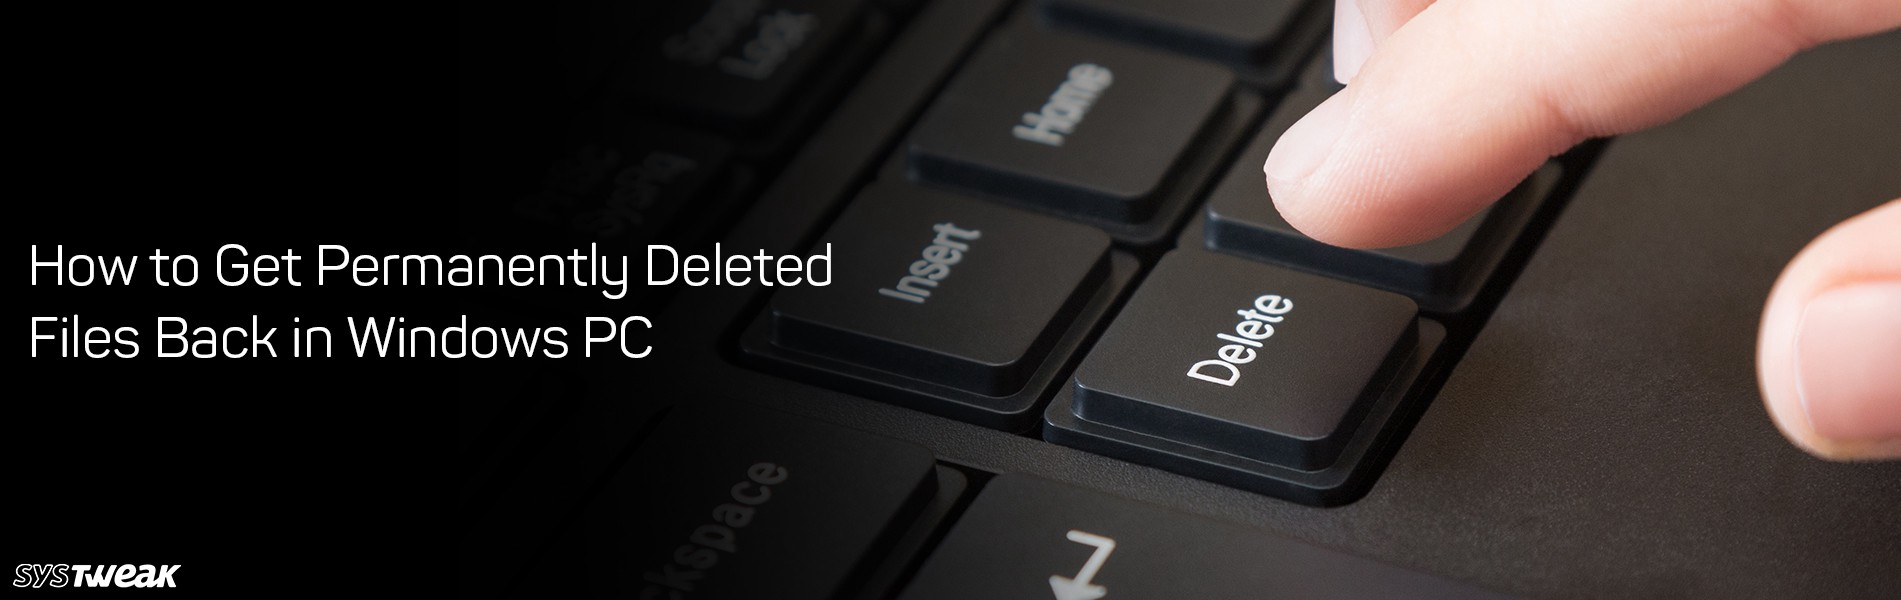 How to Get Permanently Deleted Files Back in Windows PC